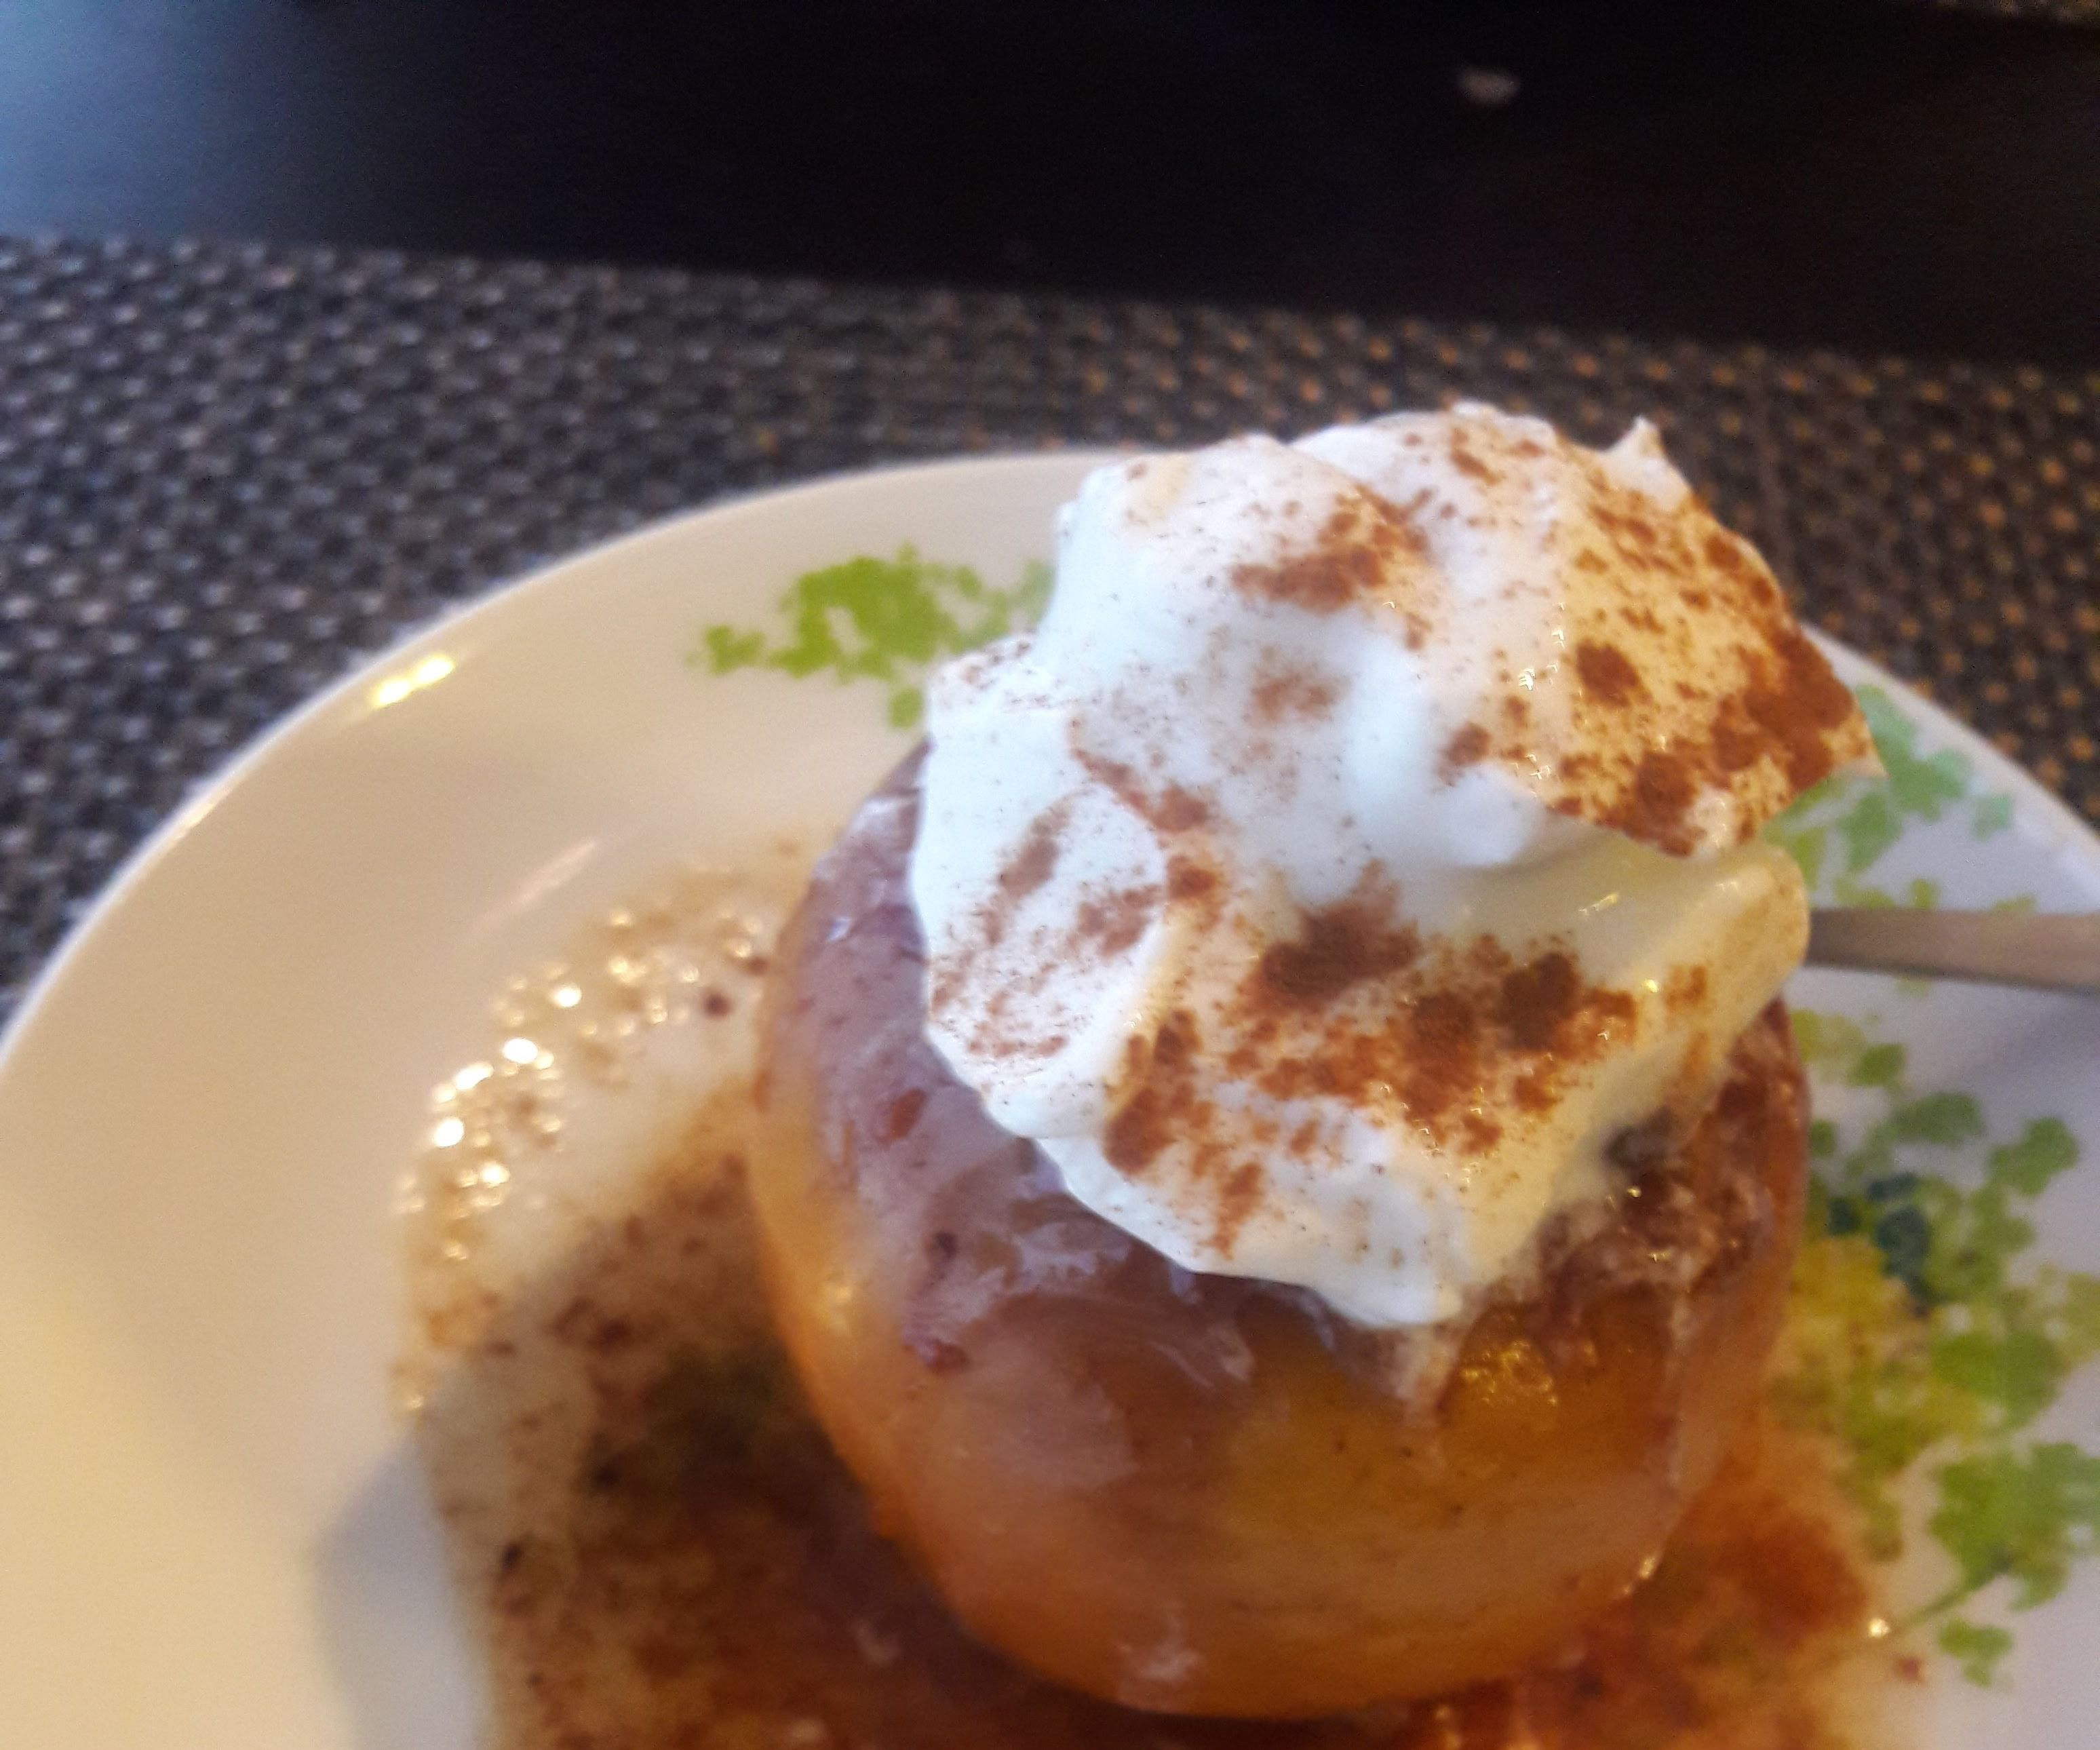 BAKED APPLES MY WAY